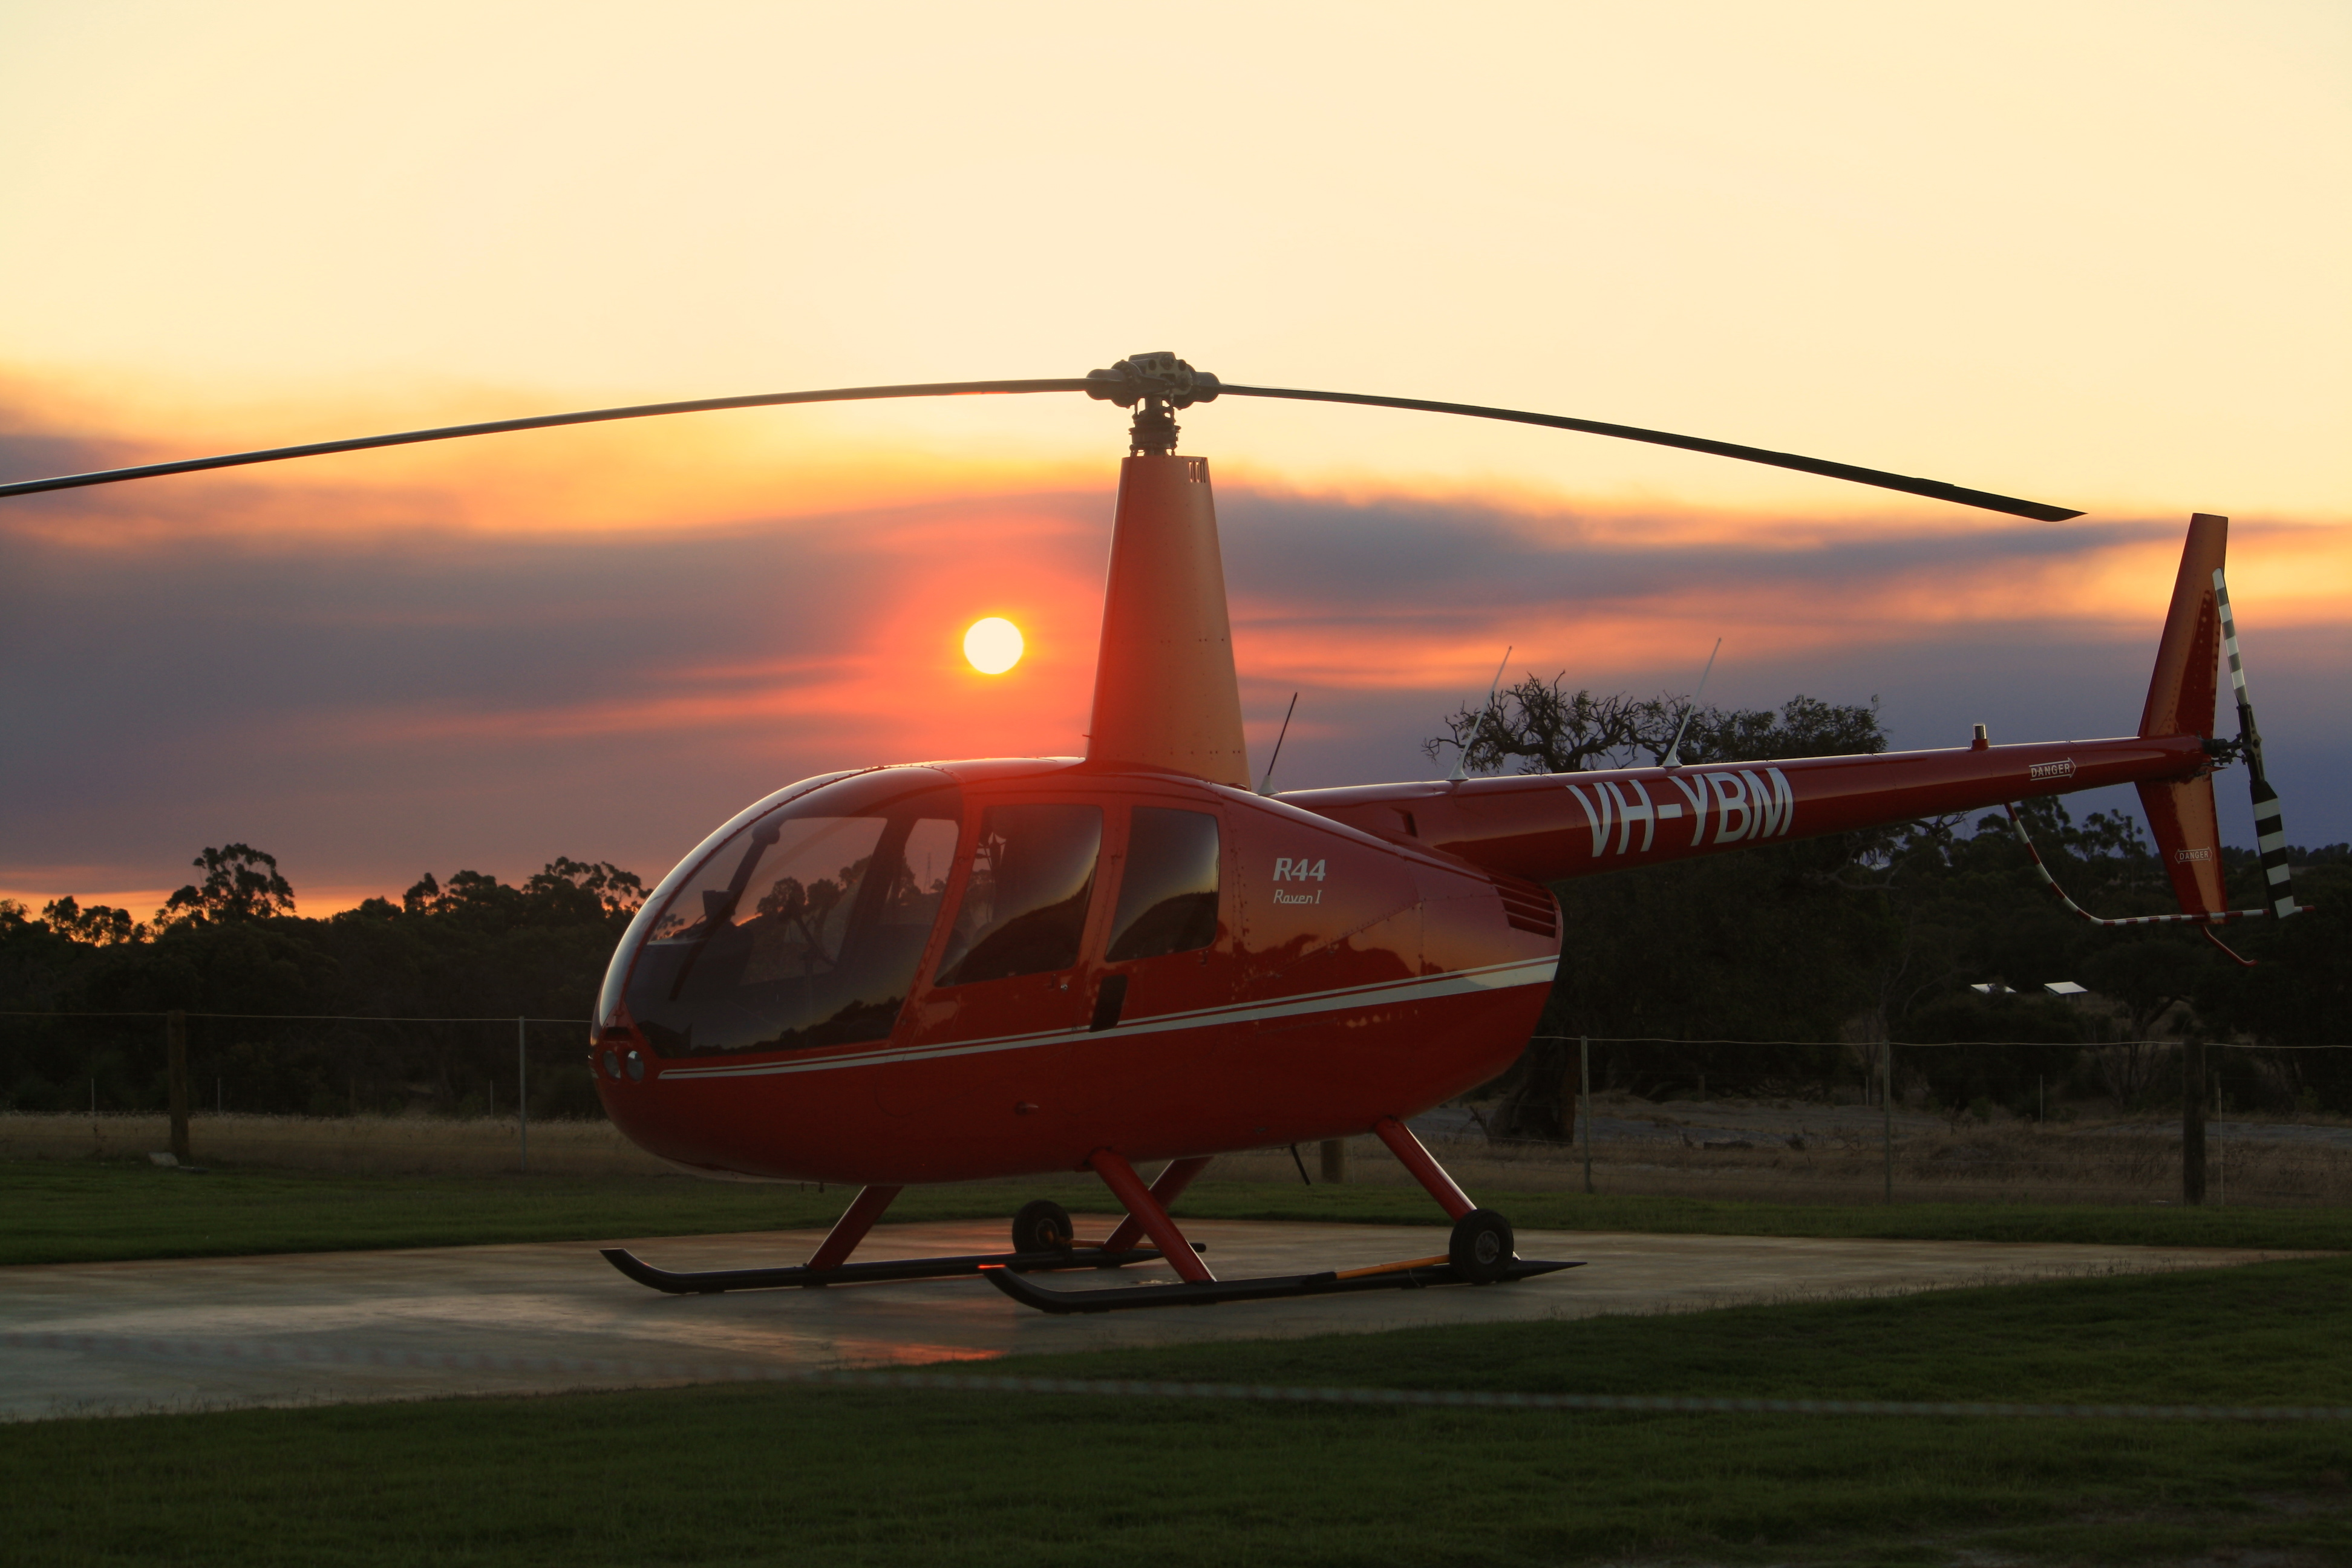 Helicopter & Sunset